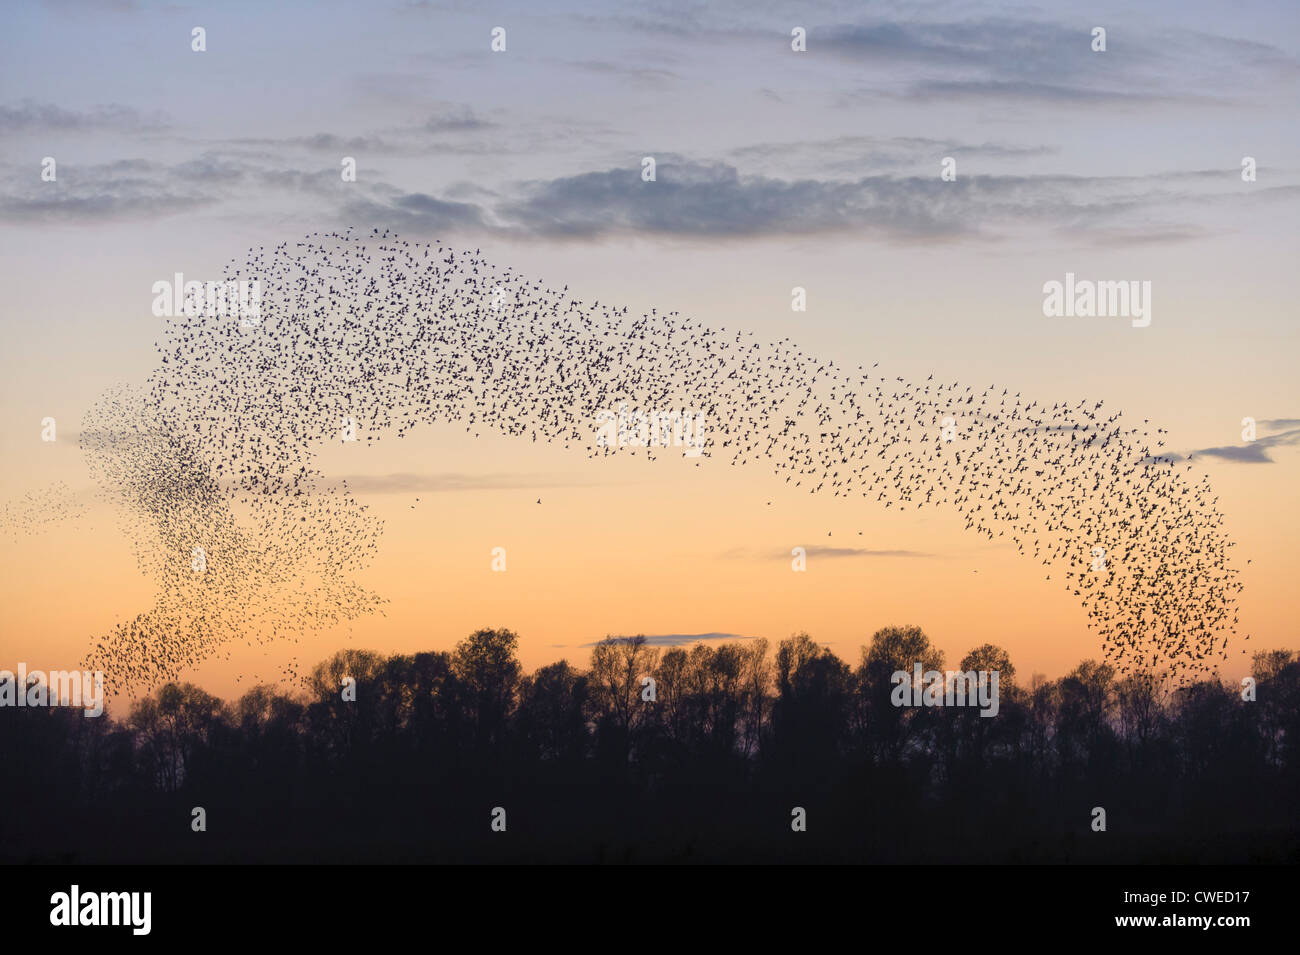 Flock of common starlings (Sturnus vulgaris) assembling for roost at dusk. Fen Drayton RSPB reserve in Cambridgeshire. - Stock Image